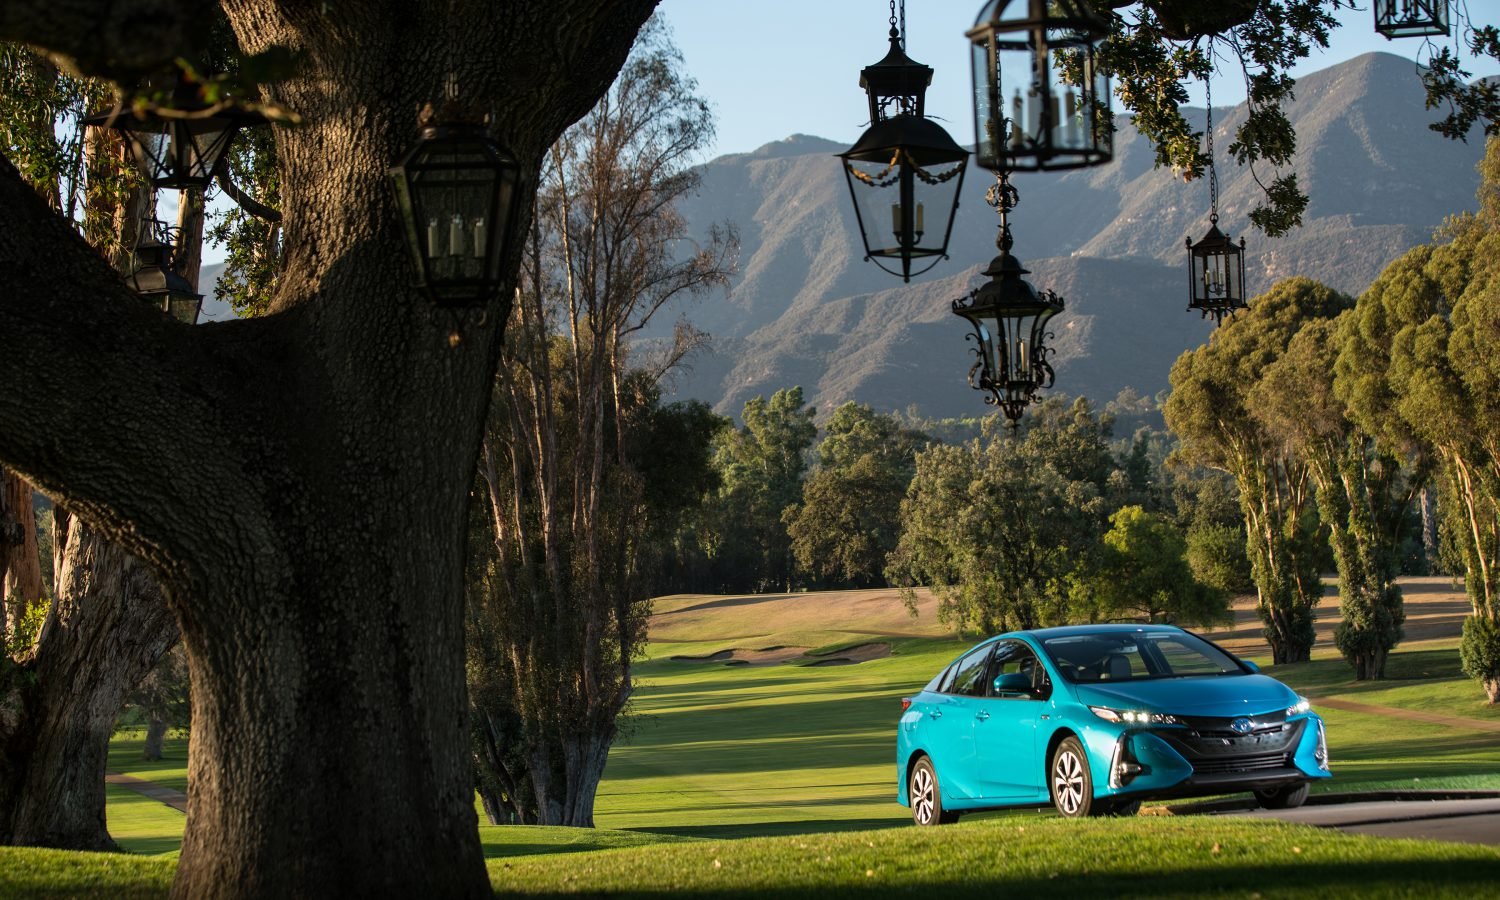 2017 Toyota Prius Prime Takes Top Honors for Electric/Hybrid Category at Kelley Blue Book Best Buy Awards